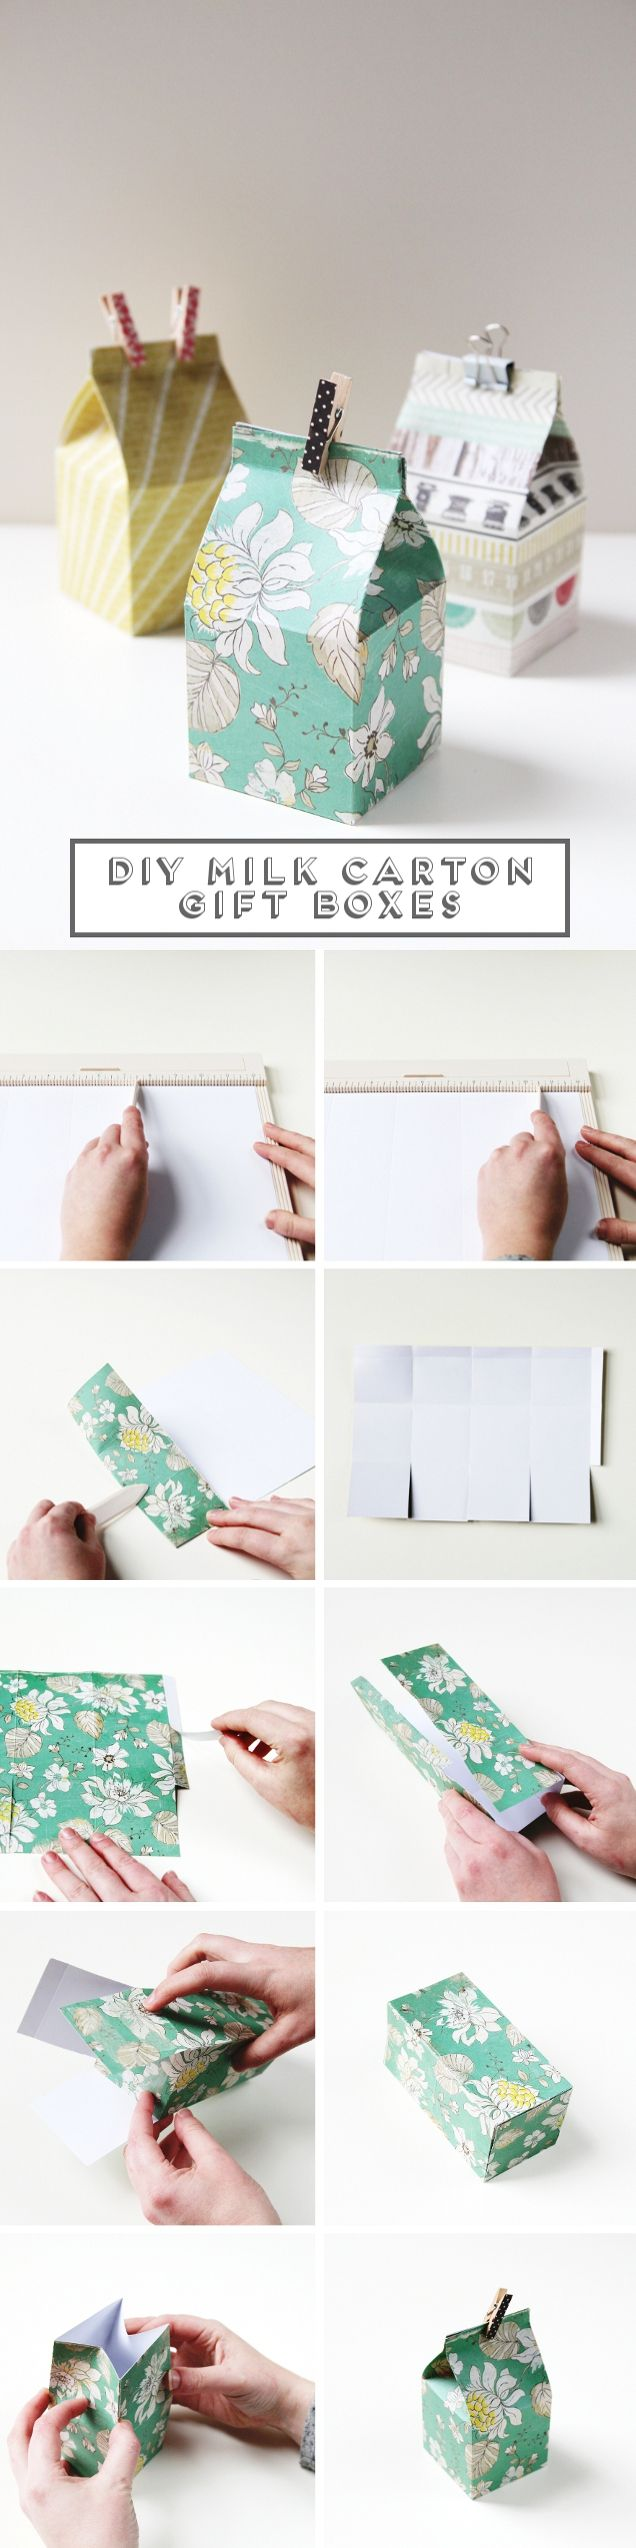 25 Best Ideas About DIY Ts On Pinterest Gifts Homemade